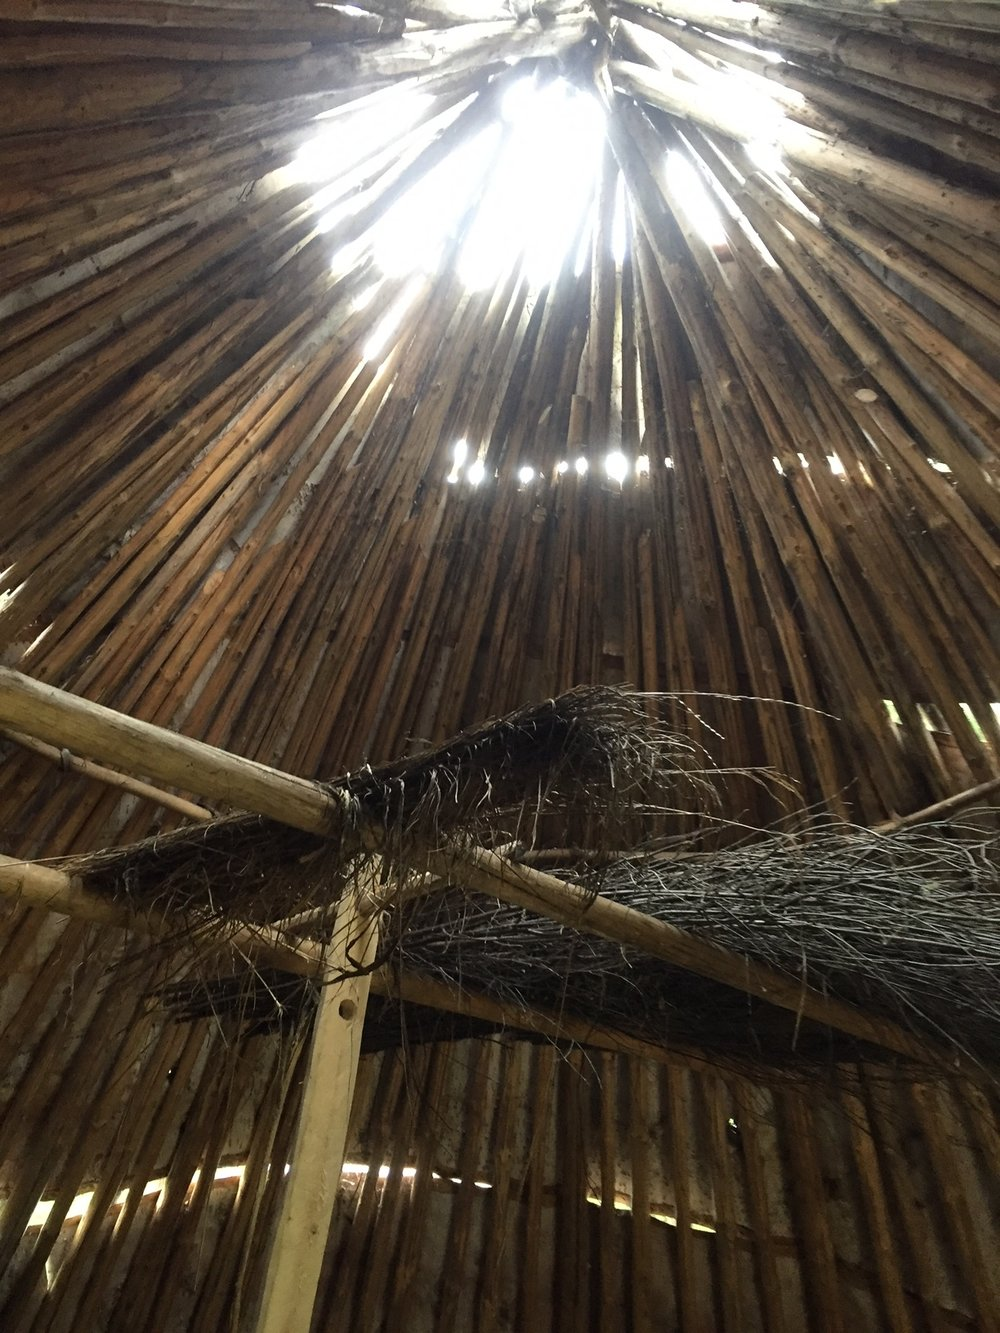 Honestly, when I walked into this tipi, I felt like I was home.